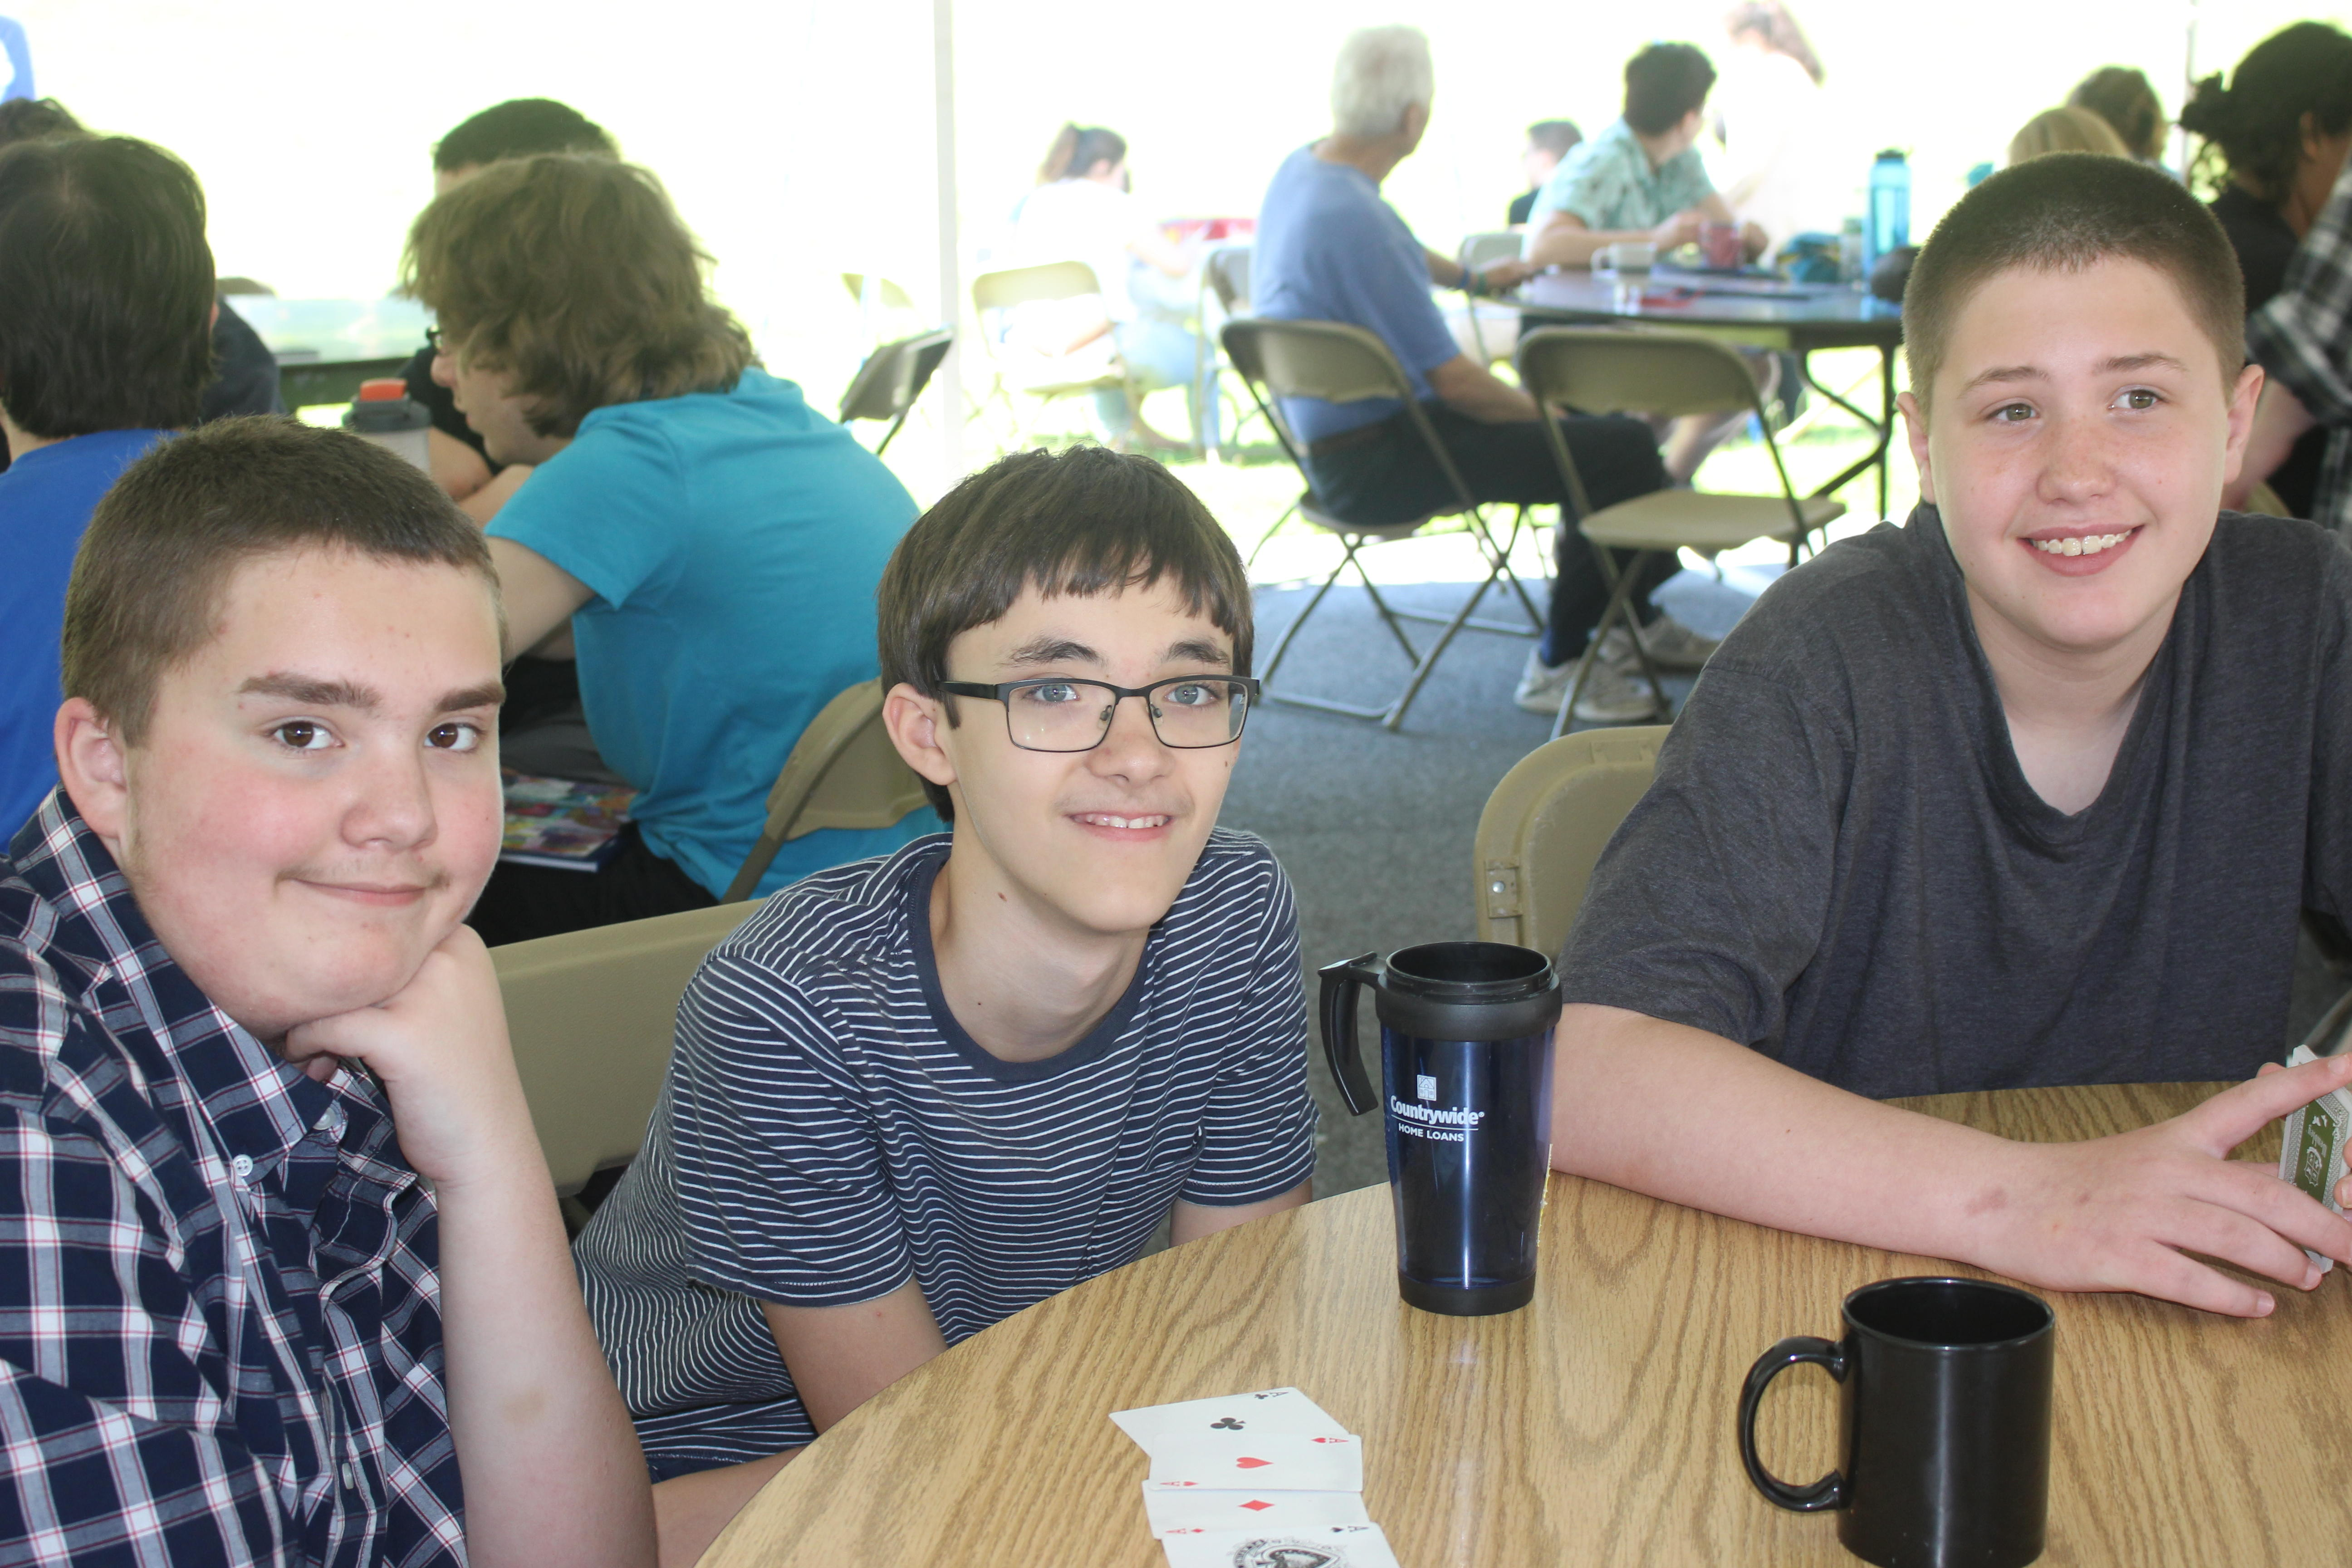 Three middle school students sitting at an outdoor table on the campus of Hunterdon Prep.